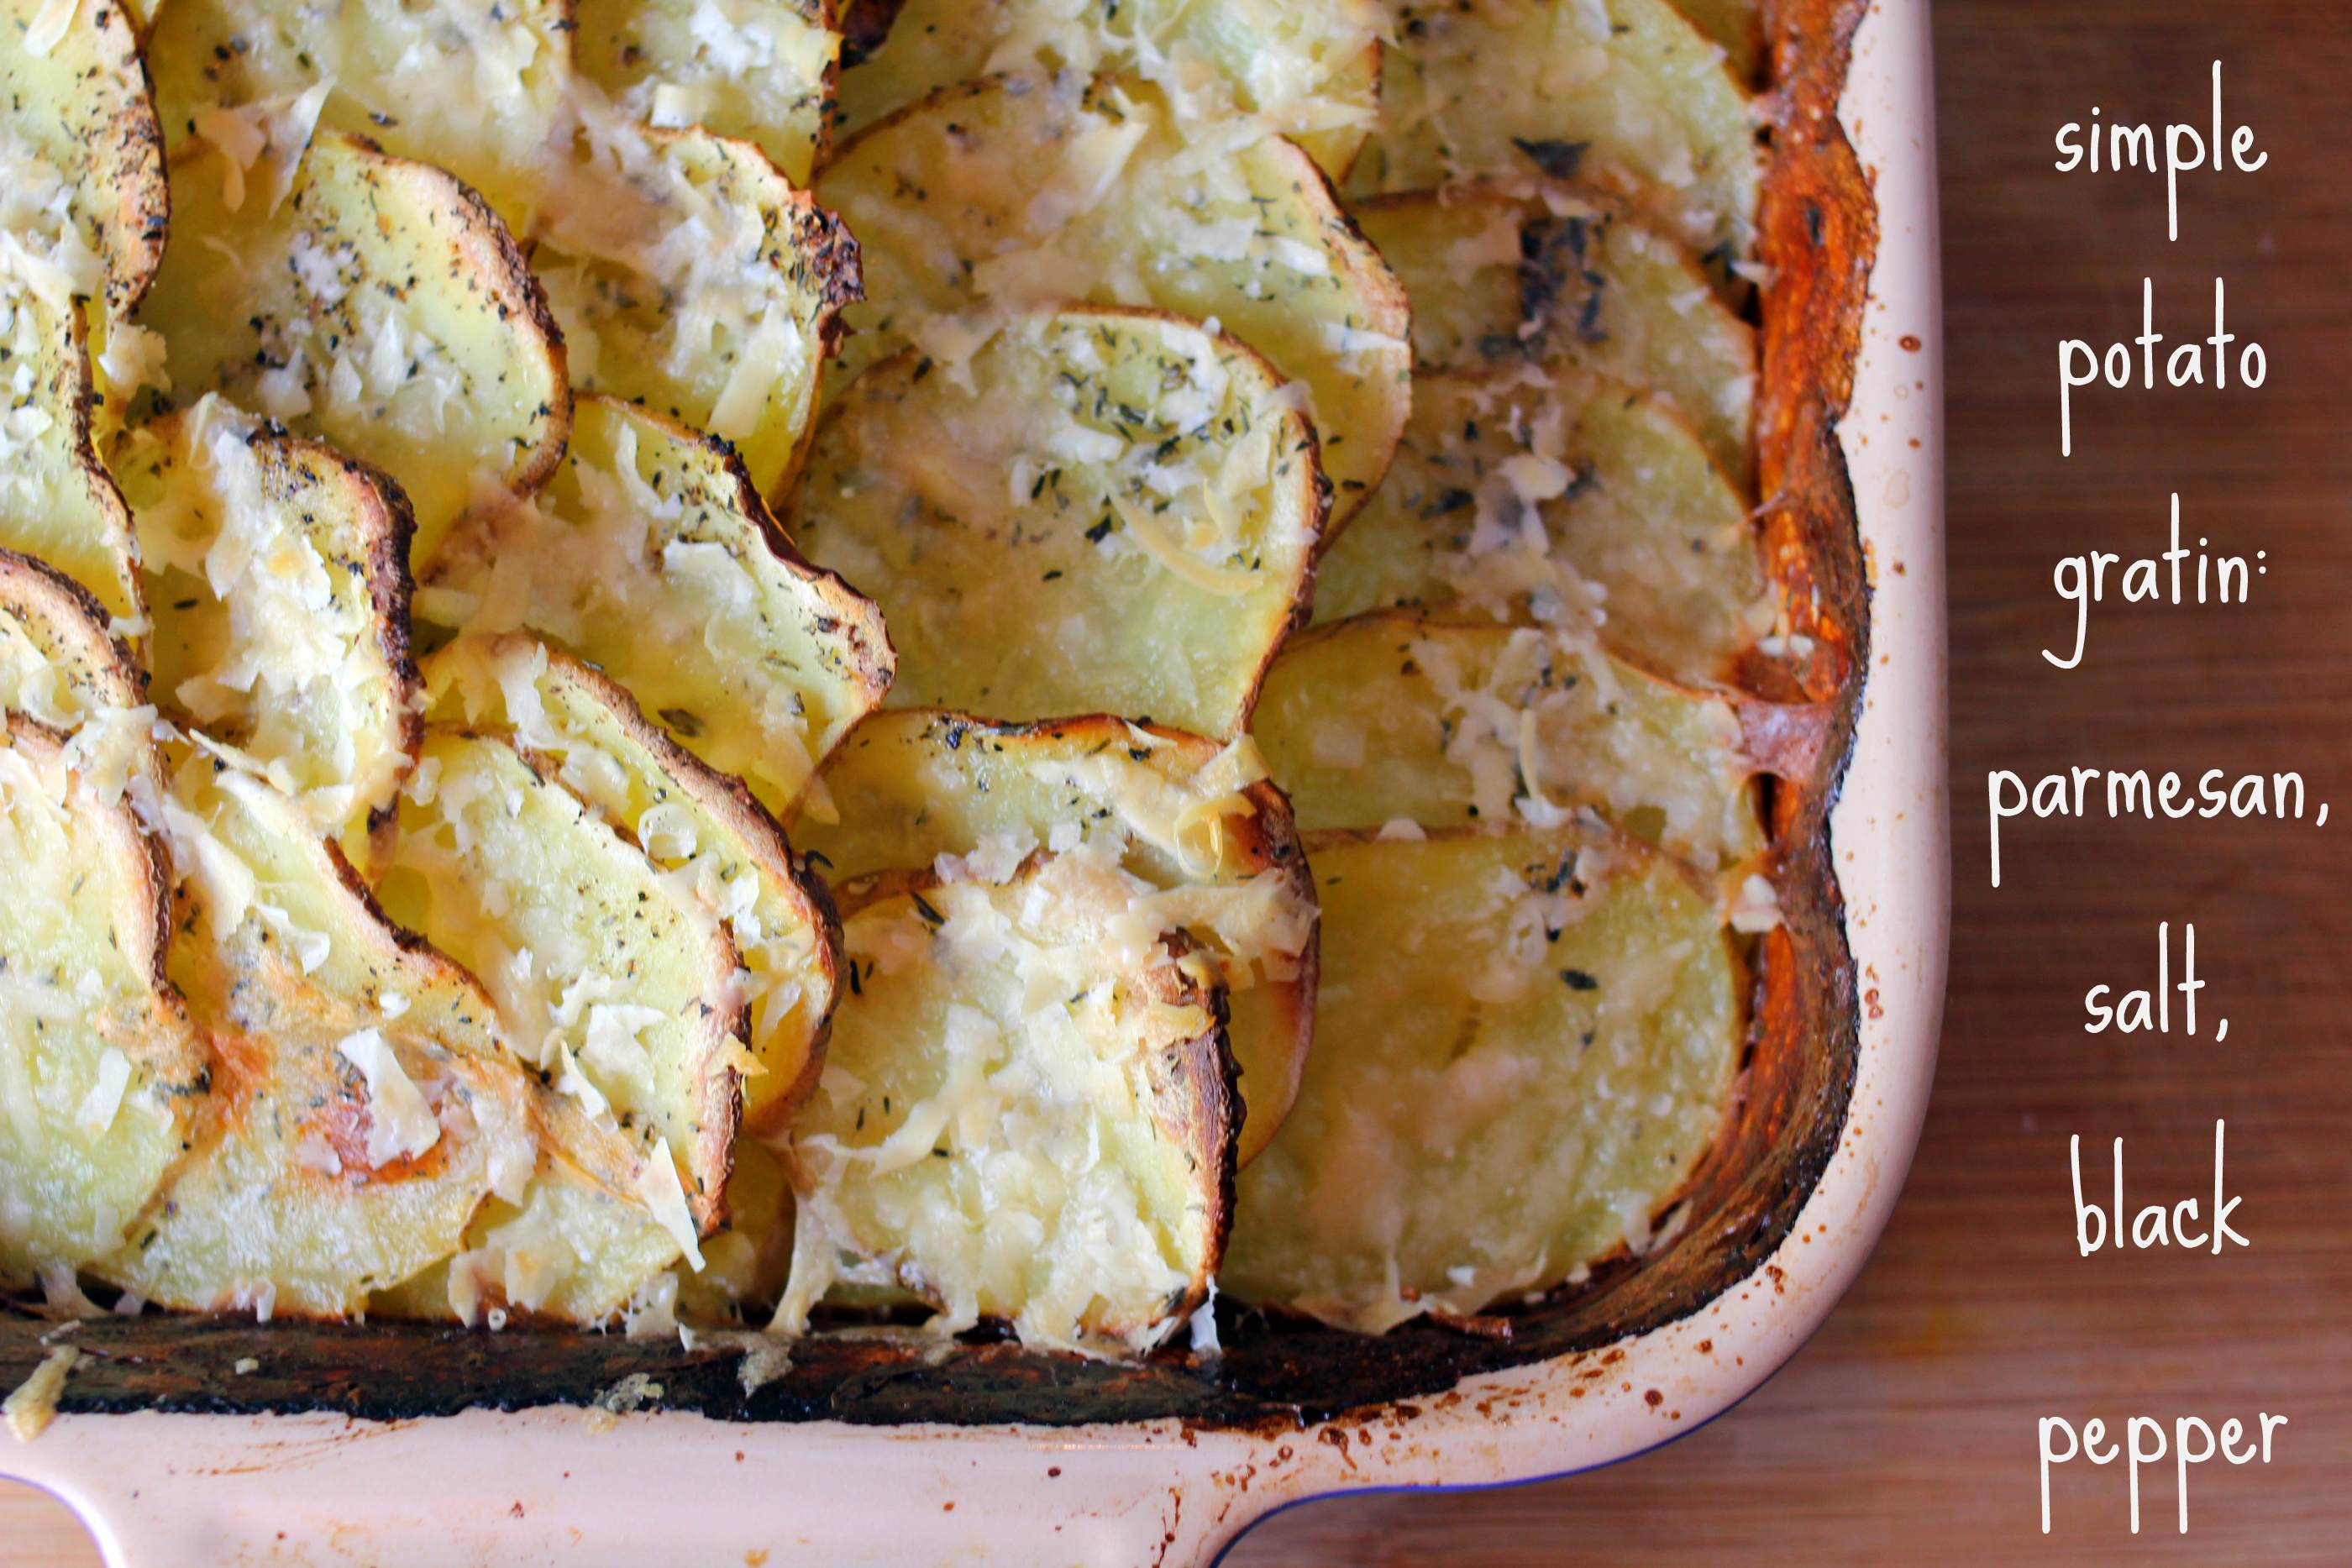 Simple Potato Gratin: Parmesan, Salt, Black Pepper | The Amused Bouche